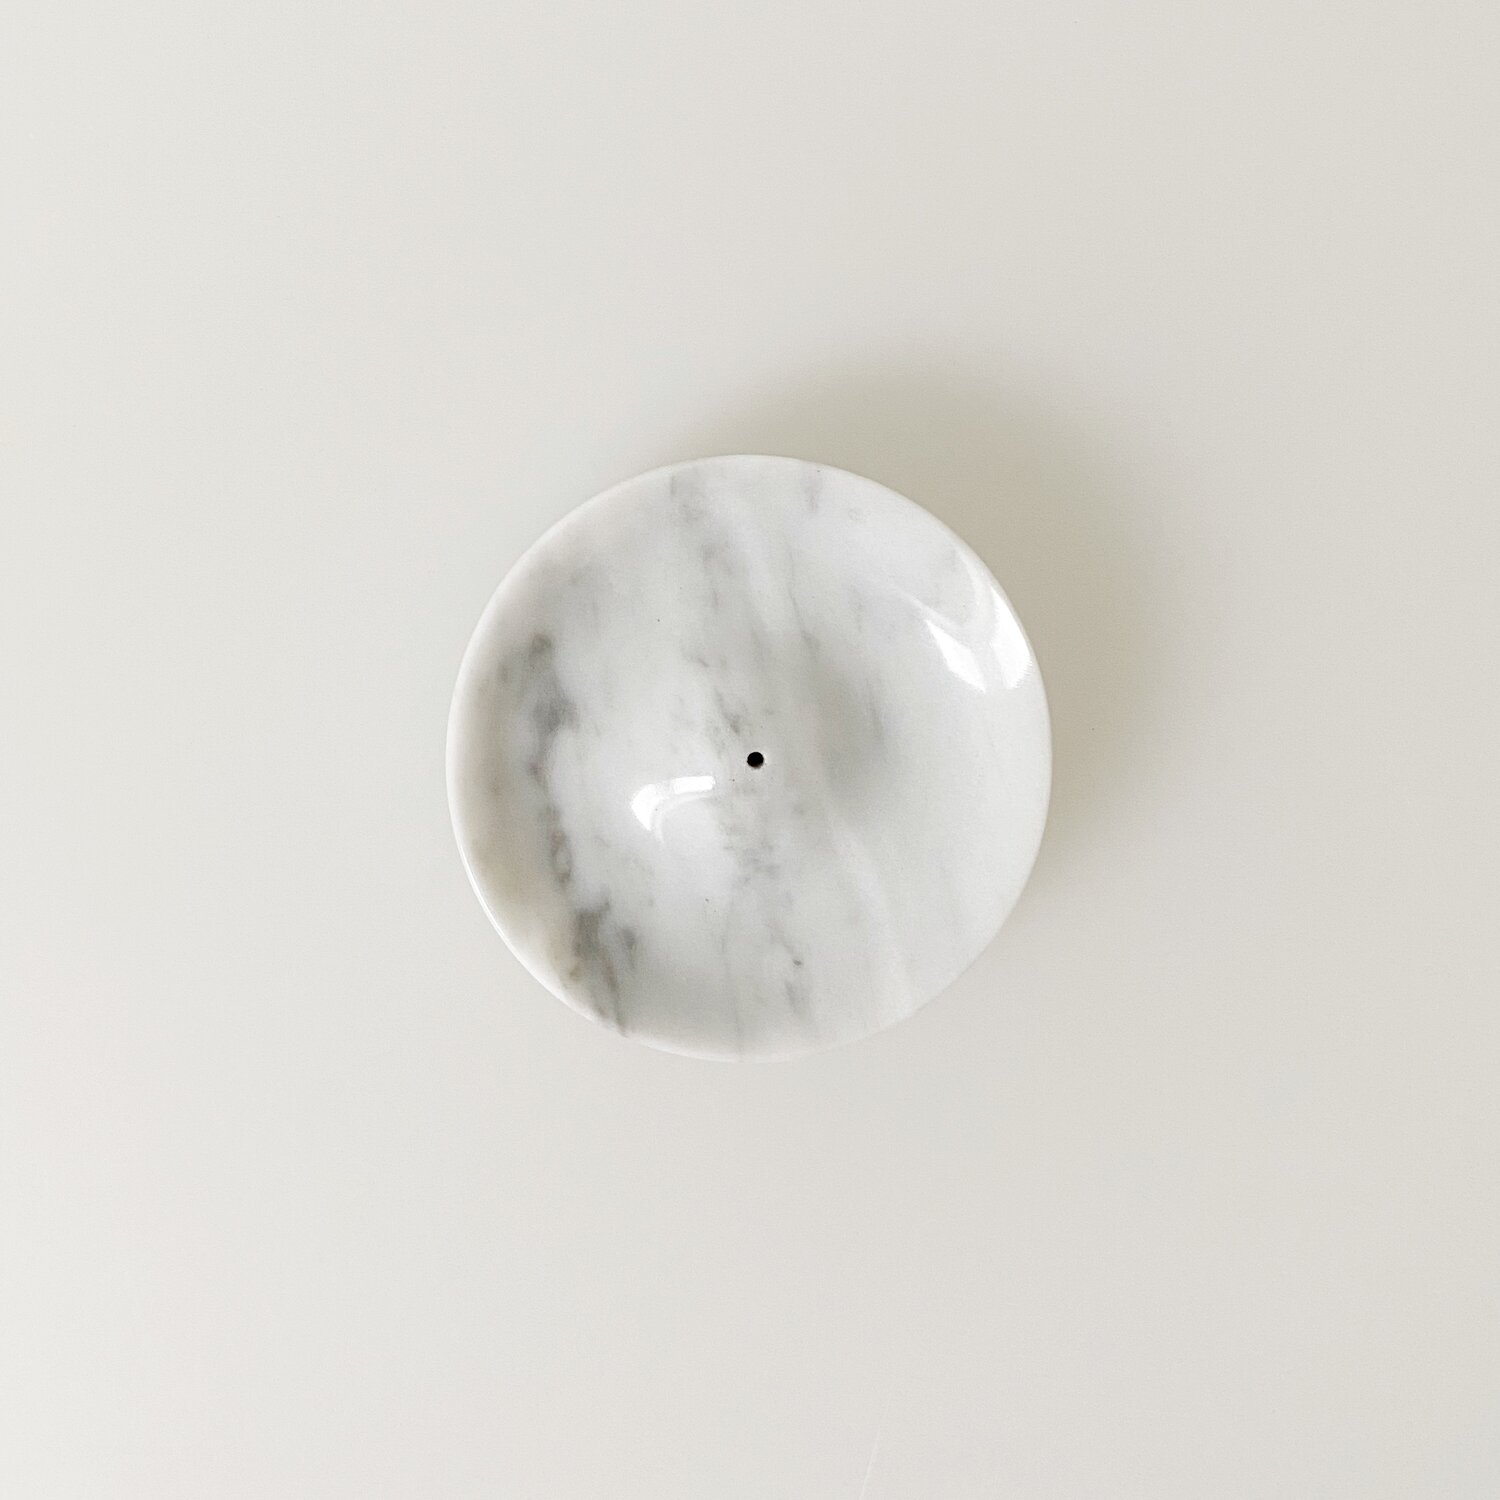 Binu Binu Carrara marble Incense holder